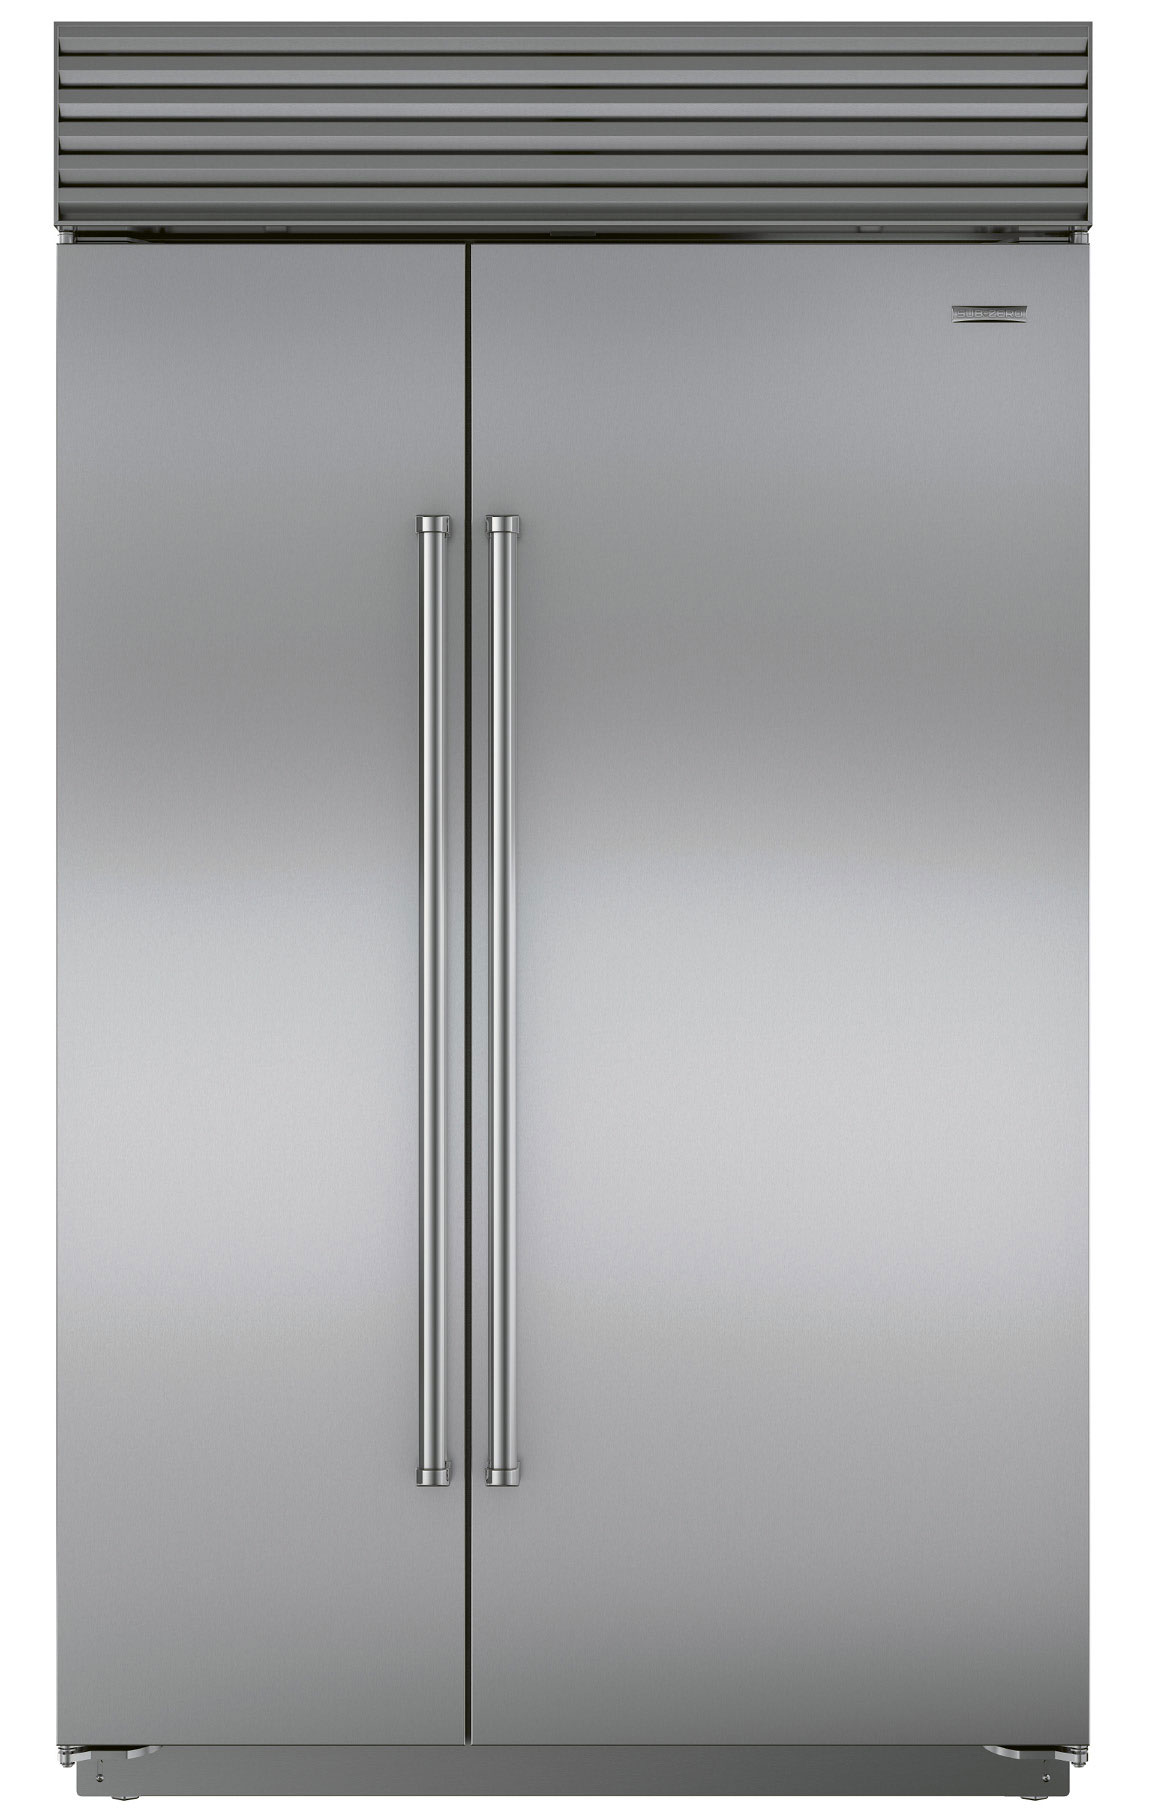 Sub-Zero  side-by-side  refrigerator, $10,599,  at Ferguson Bath, Kitchen, & Lighting Gallery